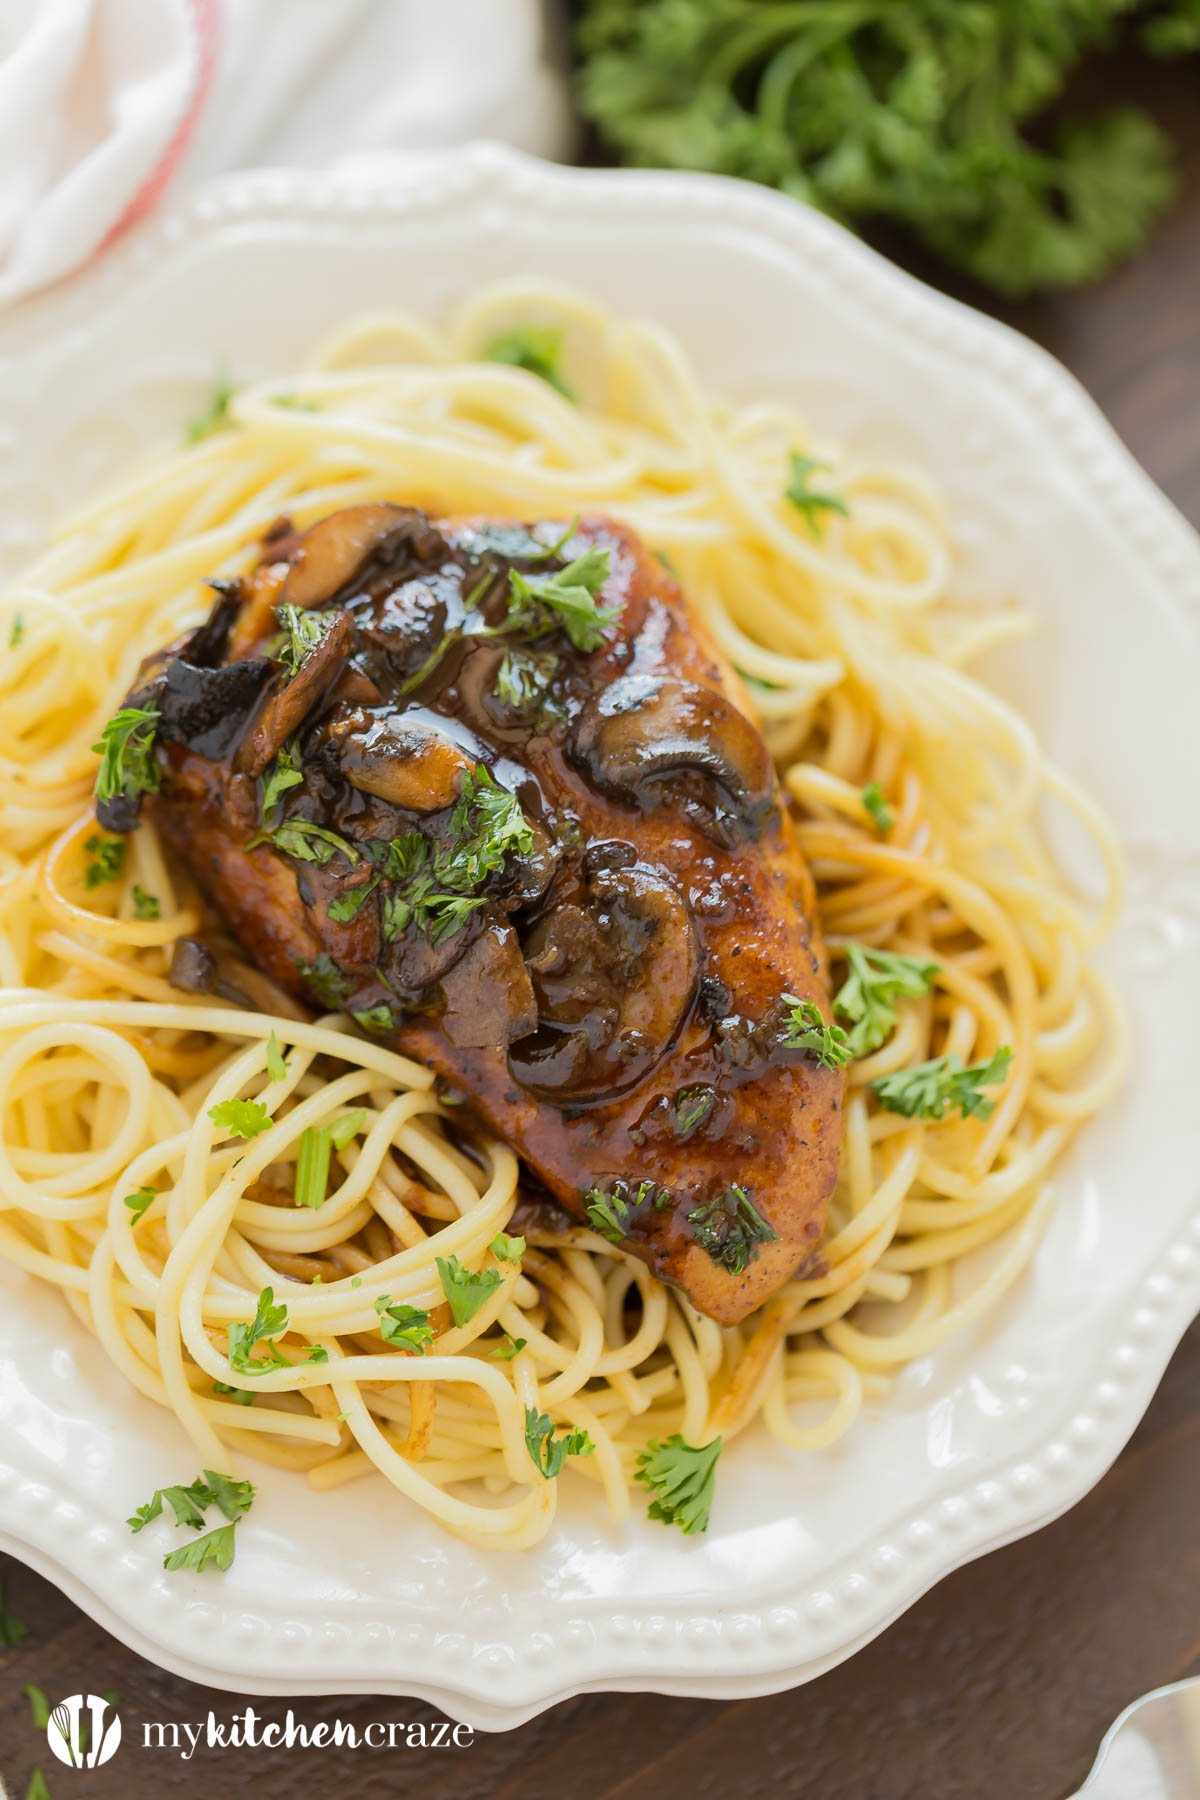 30 Minute Chicken Marsala is loaded with tons of flavor and ready within 30 minutes. This Chicken Marsala is perfect served with noodles or mashed potatoes. It's a win win for a quick meal!